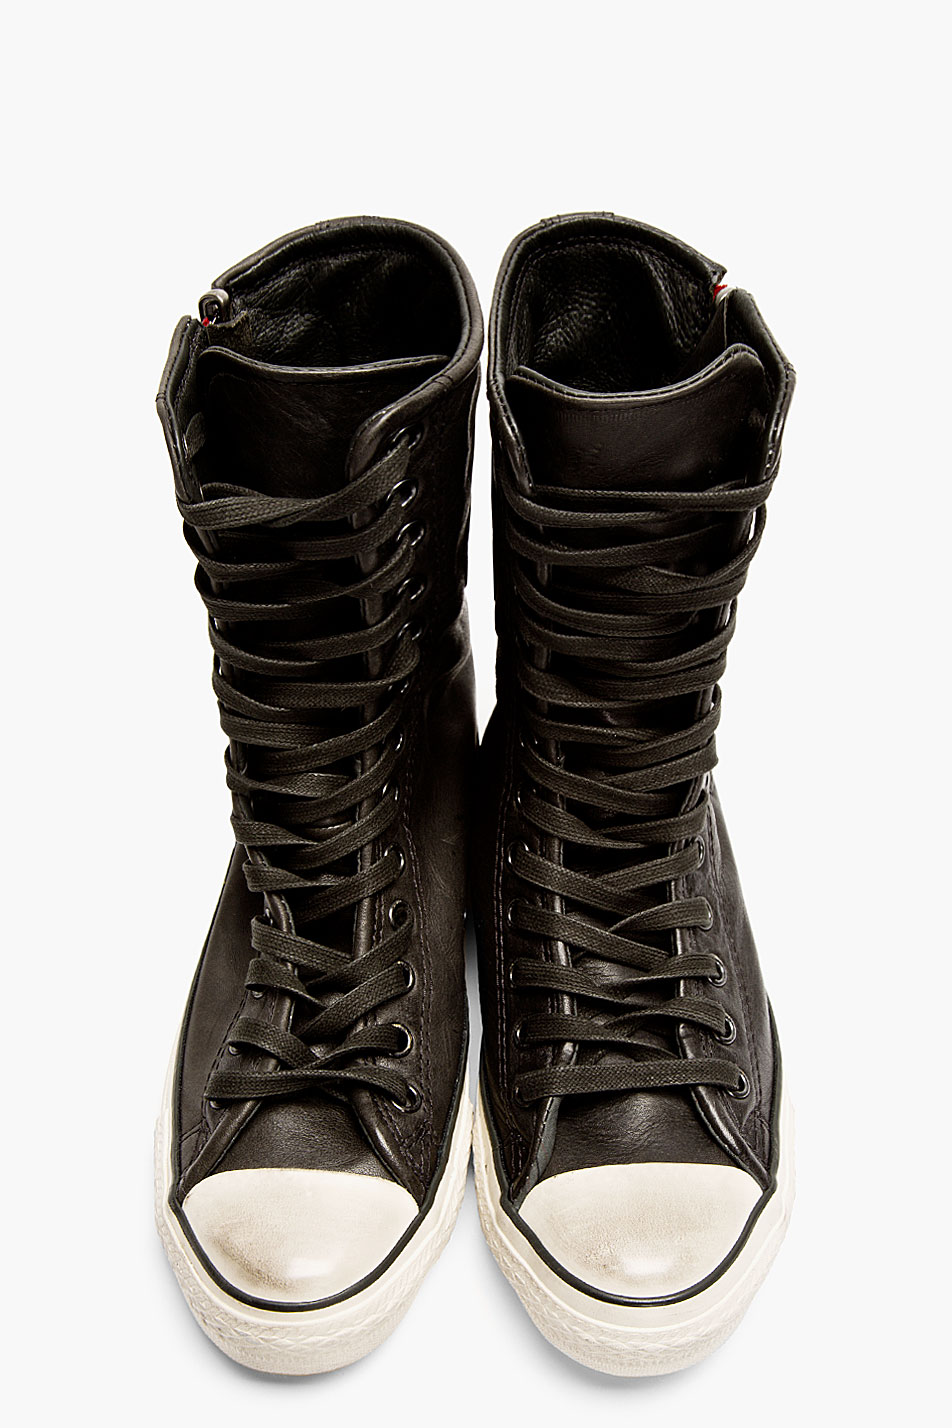 66c041f1e30 Lyst - Converse Black Leather Tall Zip Sneakers in Black for Men